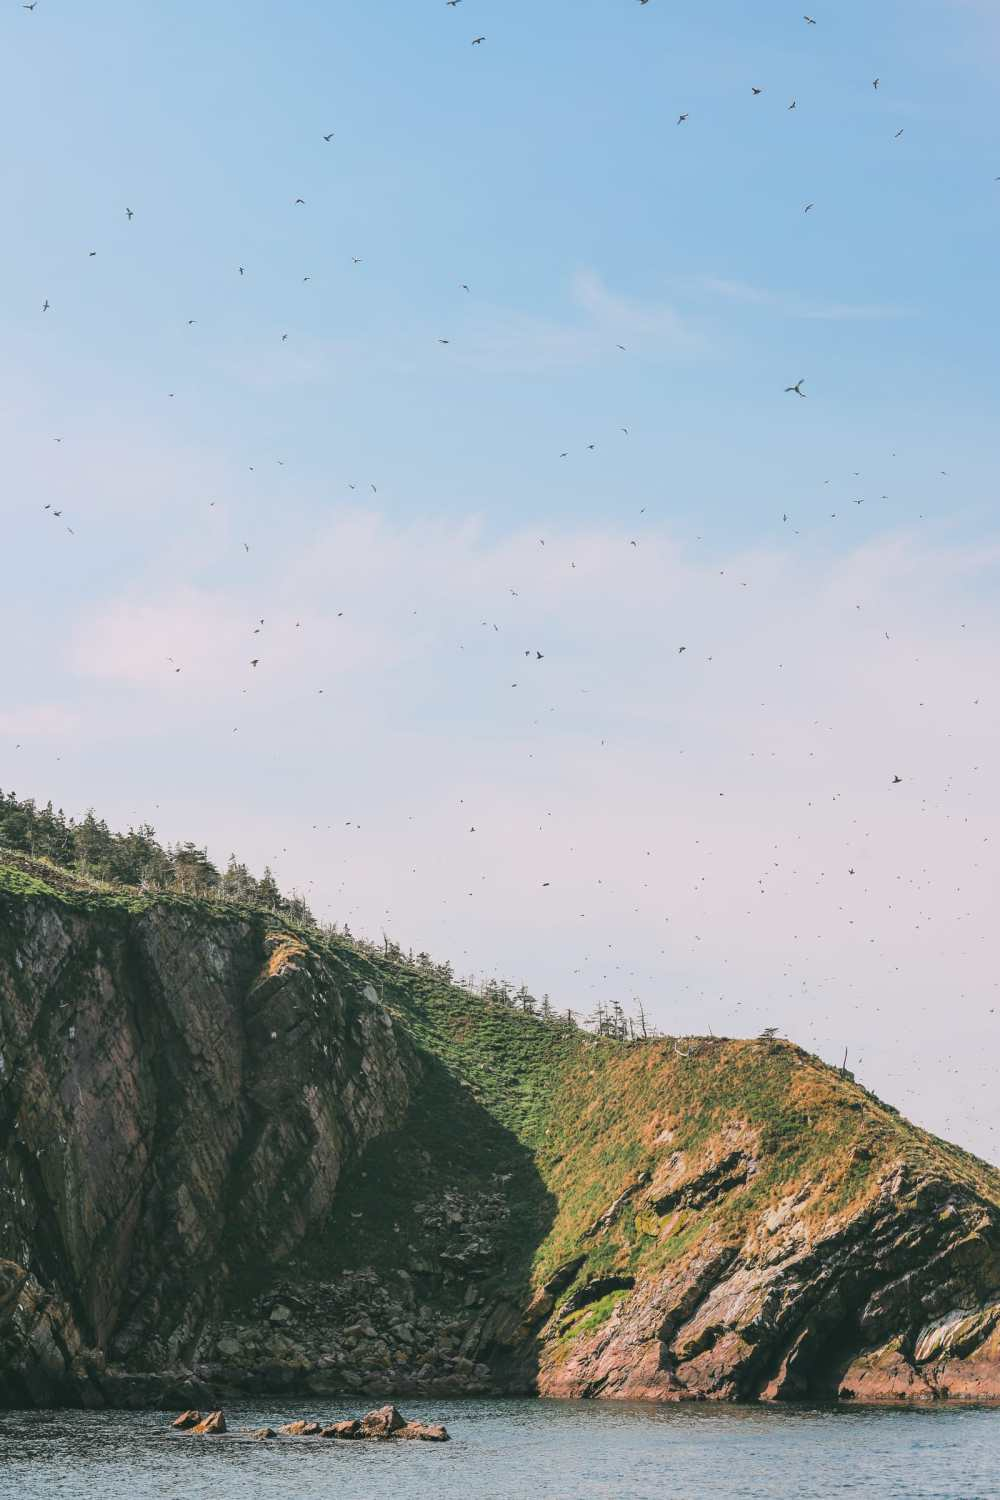 Searching For Puffins In Newfoundland, Canada (6)